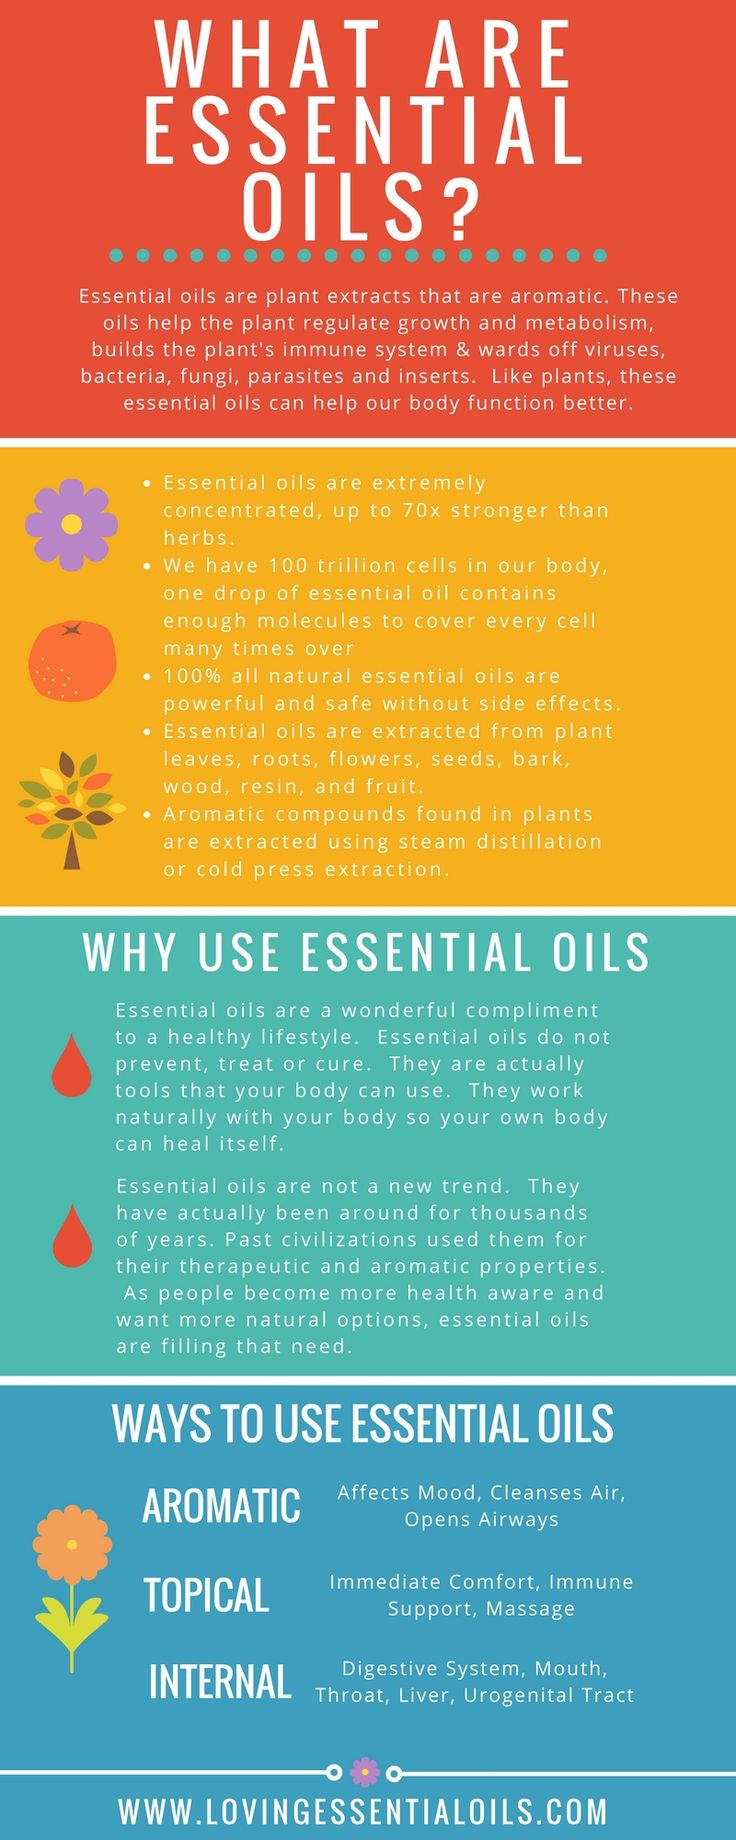 What Are Essential Oils Infographic - New to oils & aromatherapy? Learn more about essential oil here: http://www.lovingessentialoils.com/blogs/essential-oil-tips/what-are-essential-oils                                                                                                                                                                                 More